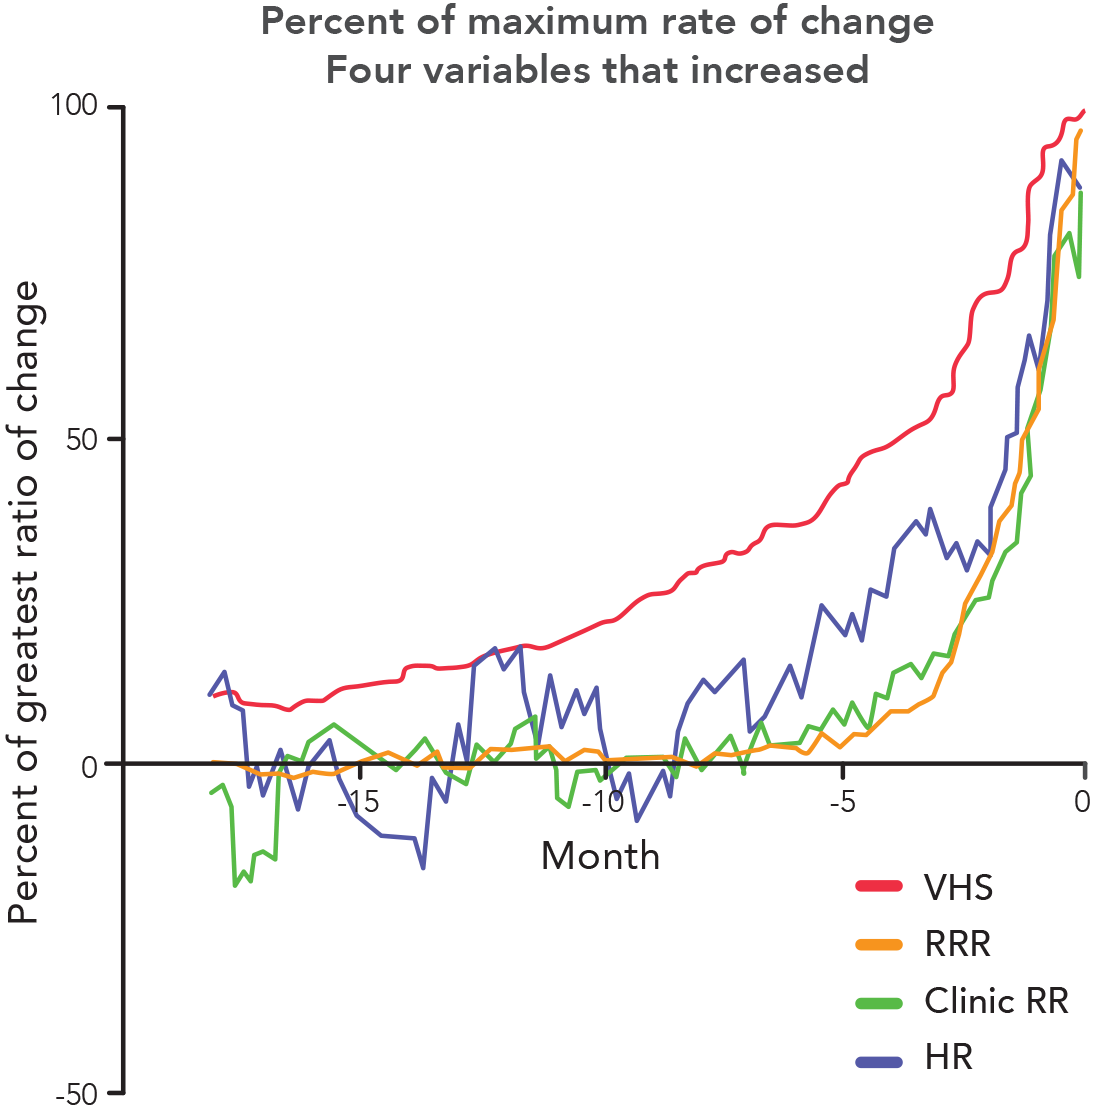 Percent of maximum rate of change Variables that increased